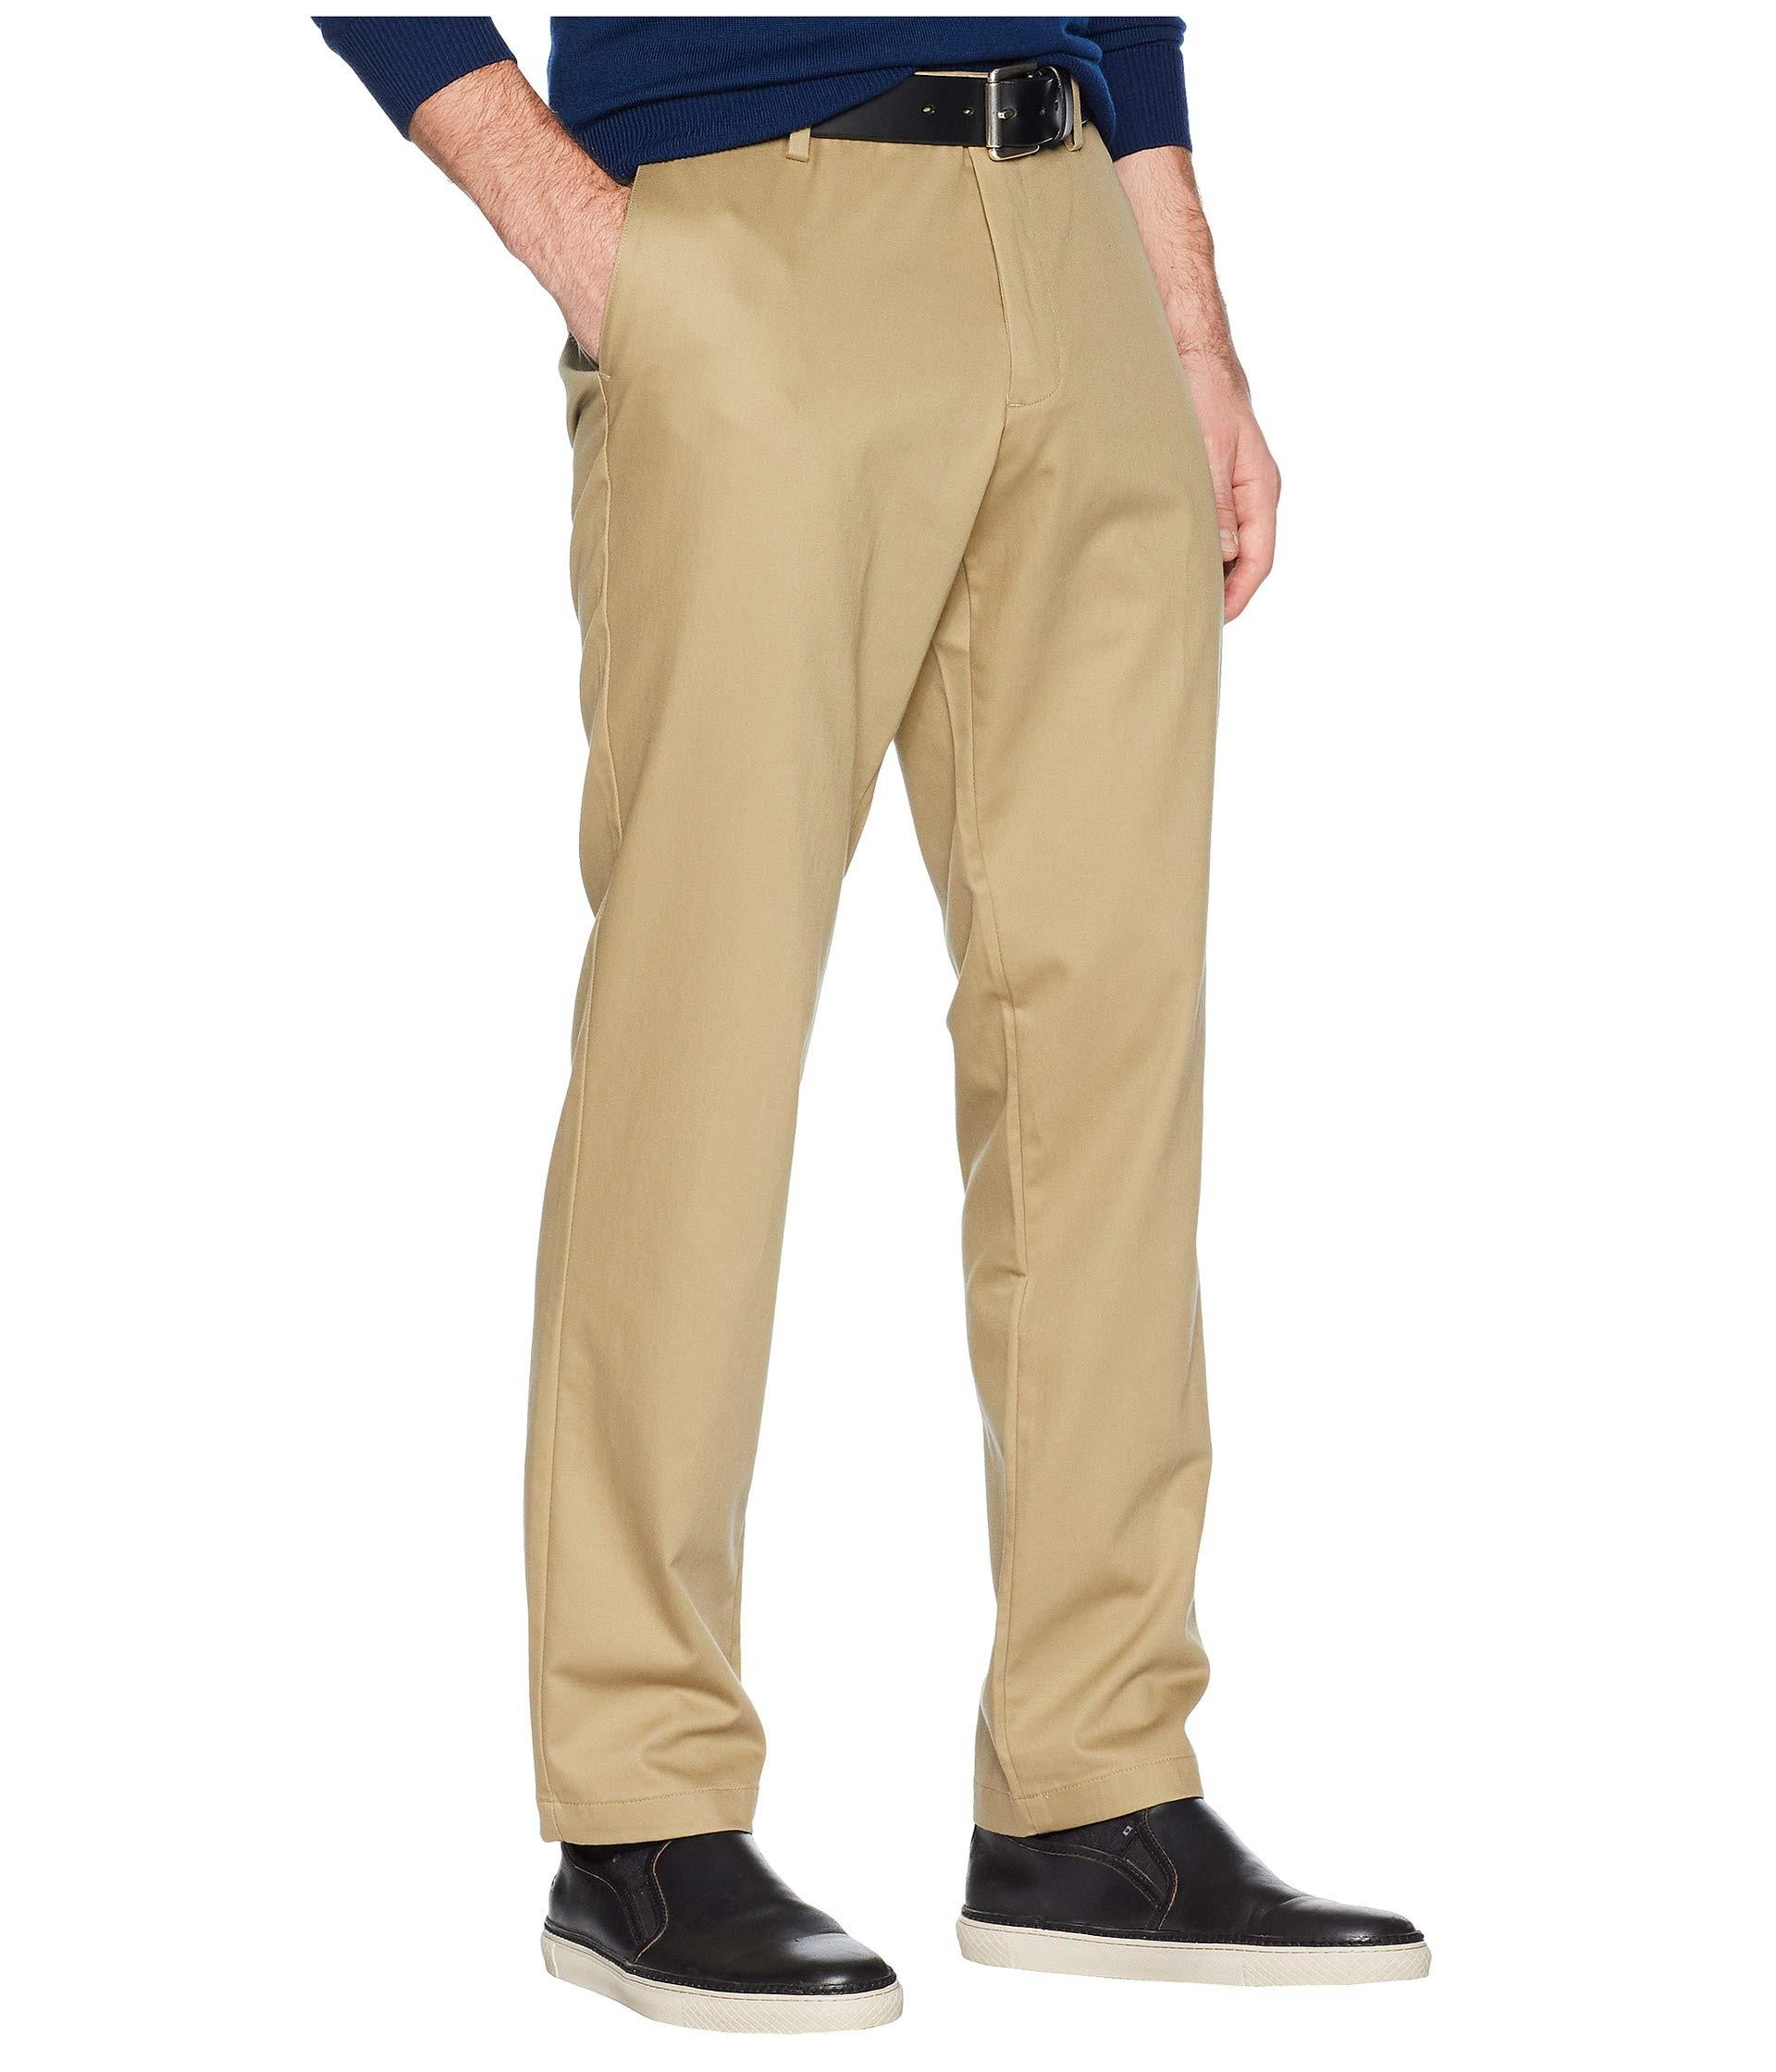 Fit Creaseless Dockers New Khaki Cotton Pants Athletic British Lux Signature Stretch O55wTq6